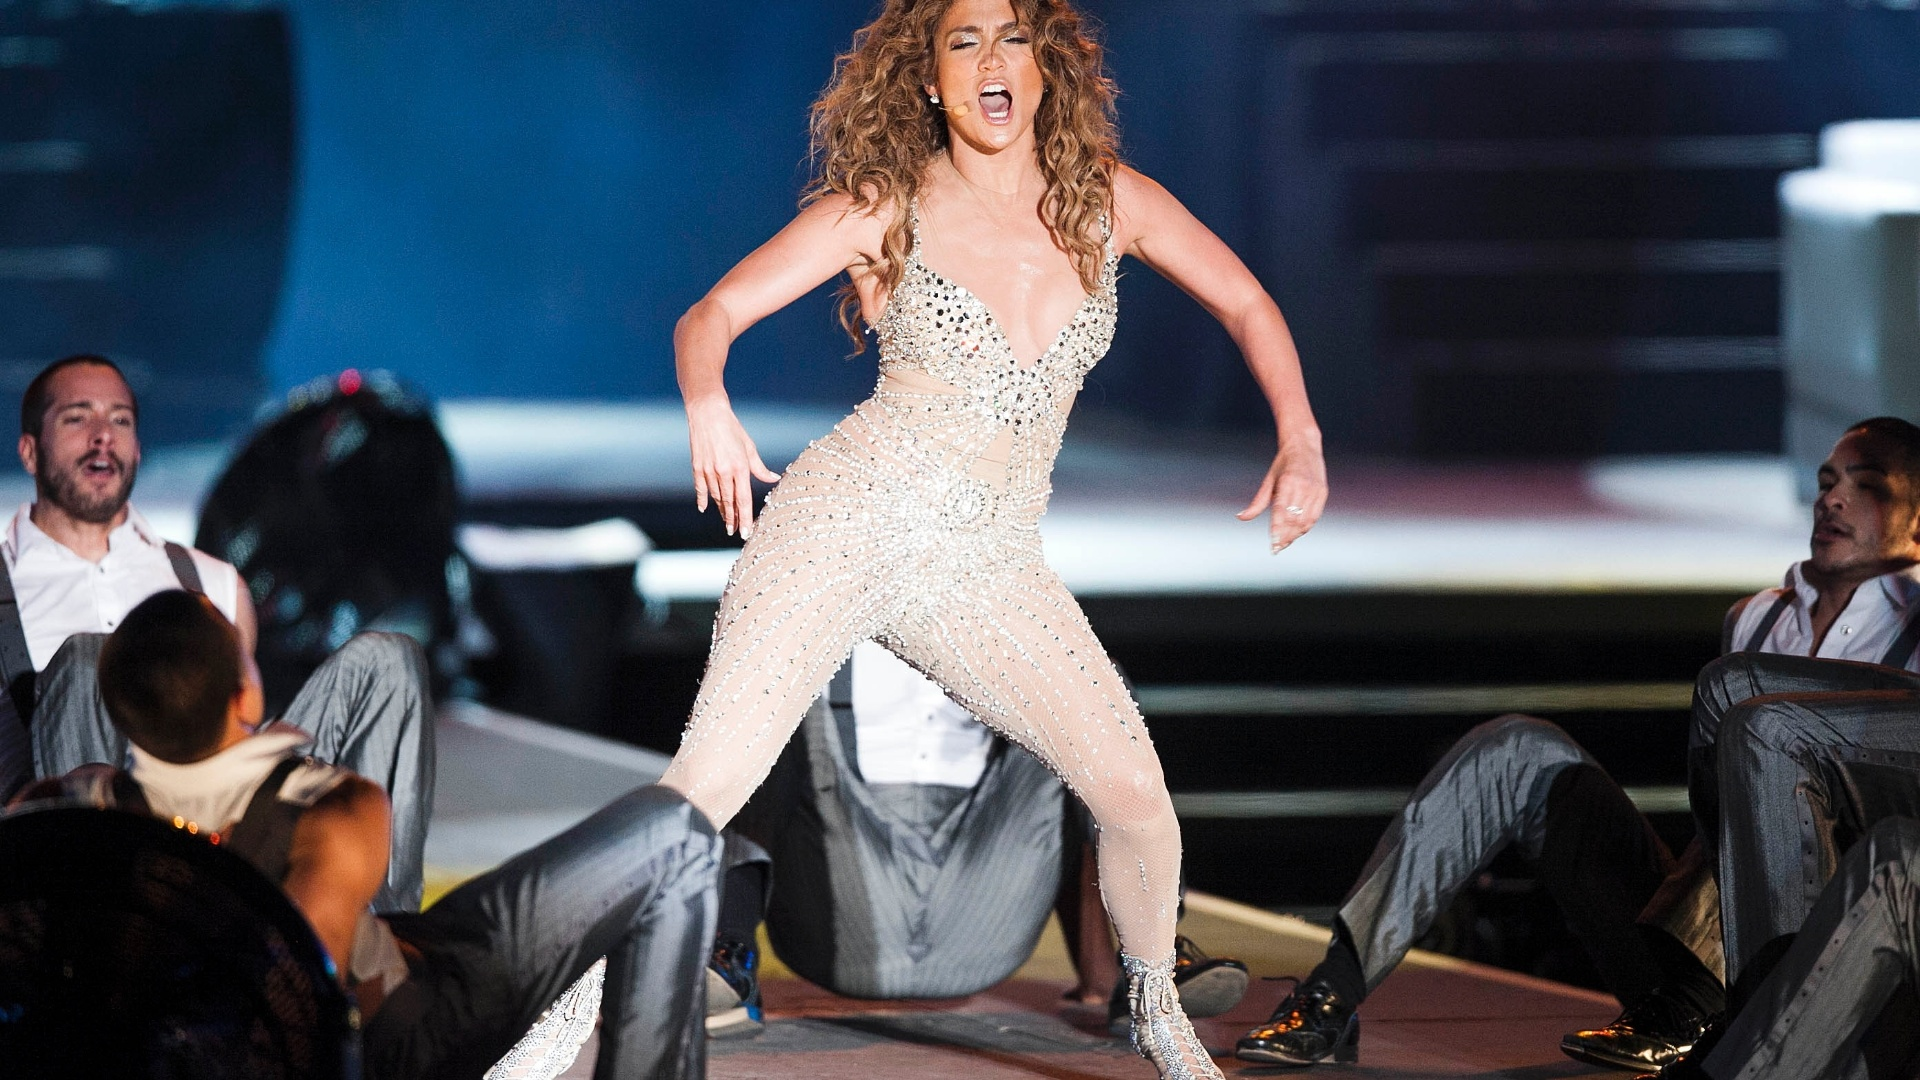 Jennifer Lopez dana no palco do Pop Music Festival, em SP (23/6/12)